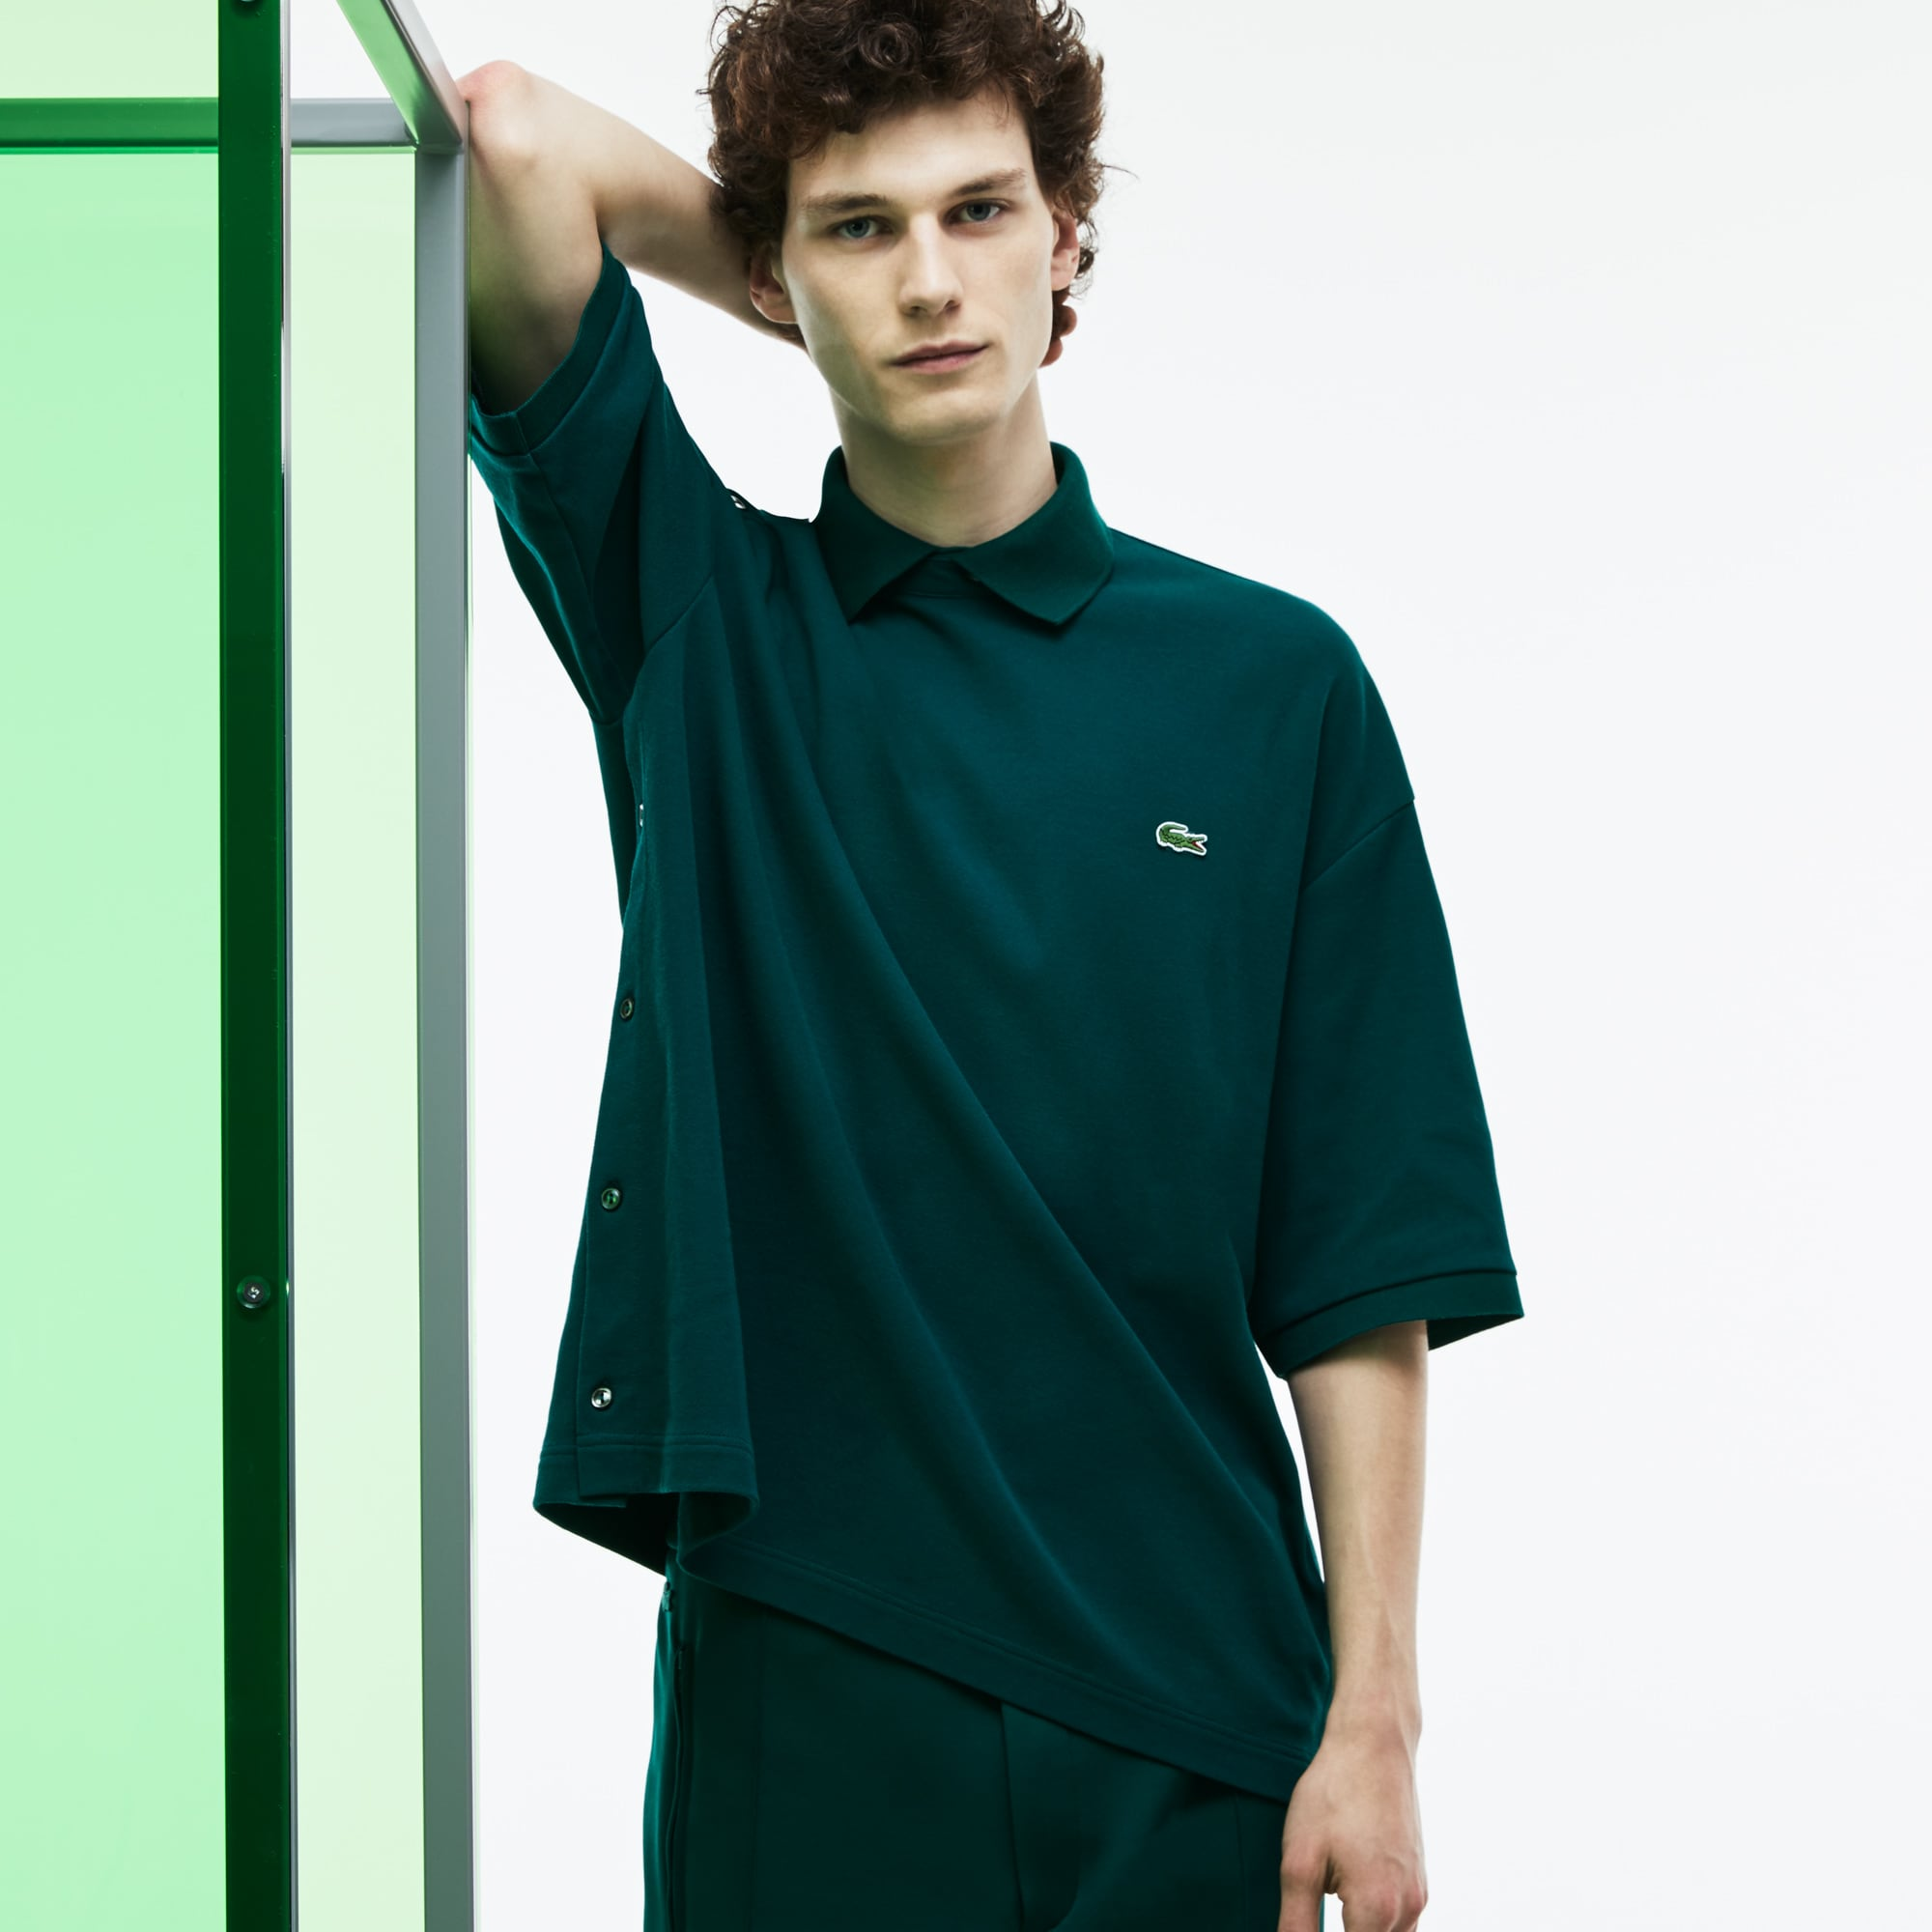 Men's Fashion Show Loose Fit Buttoned Sleeves Polo